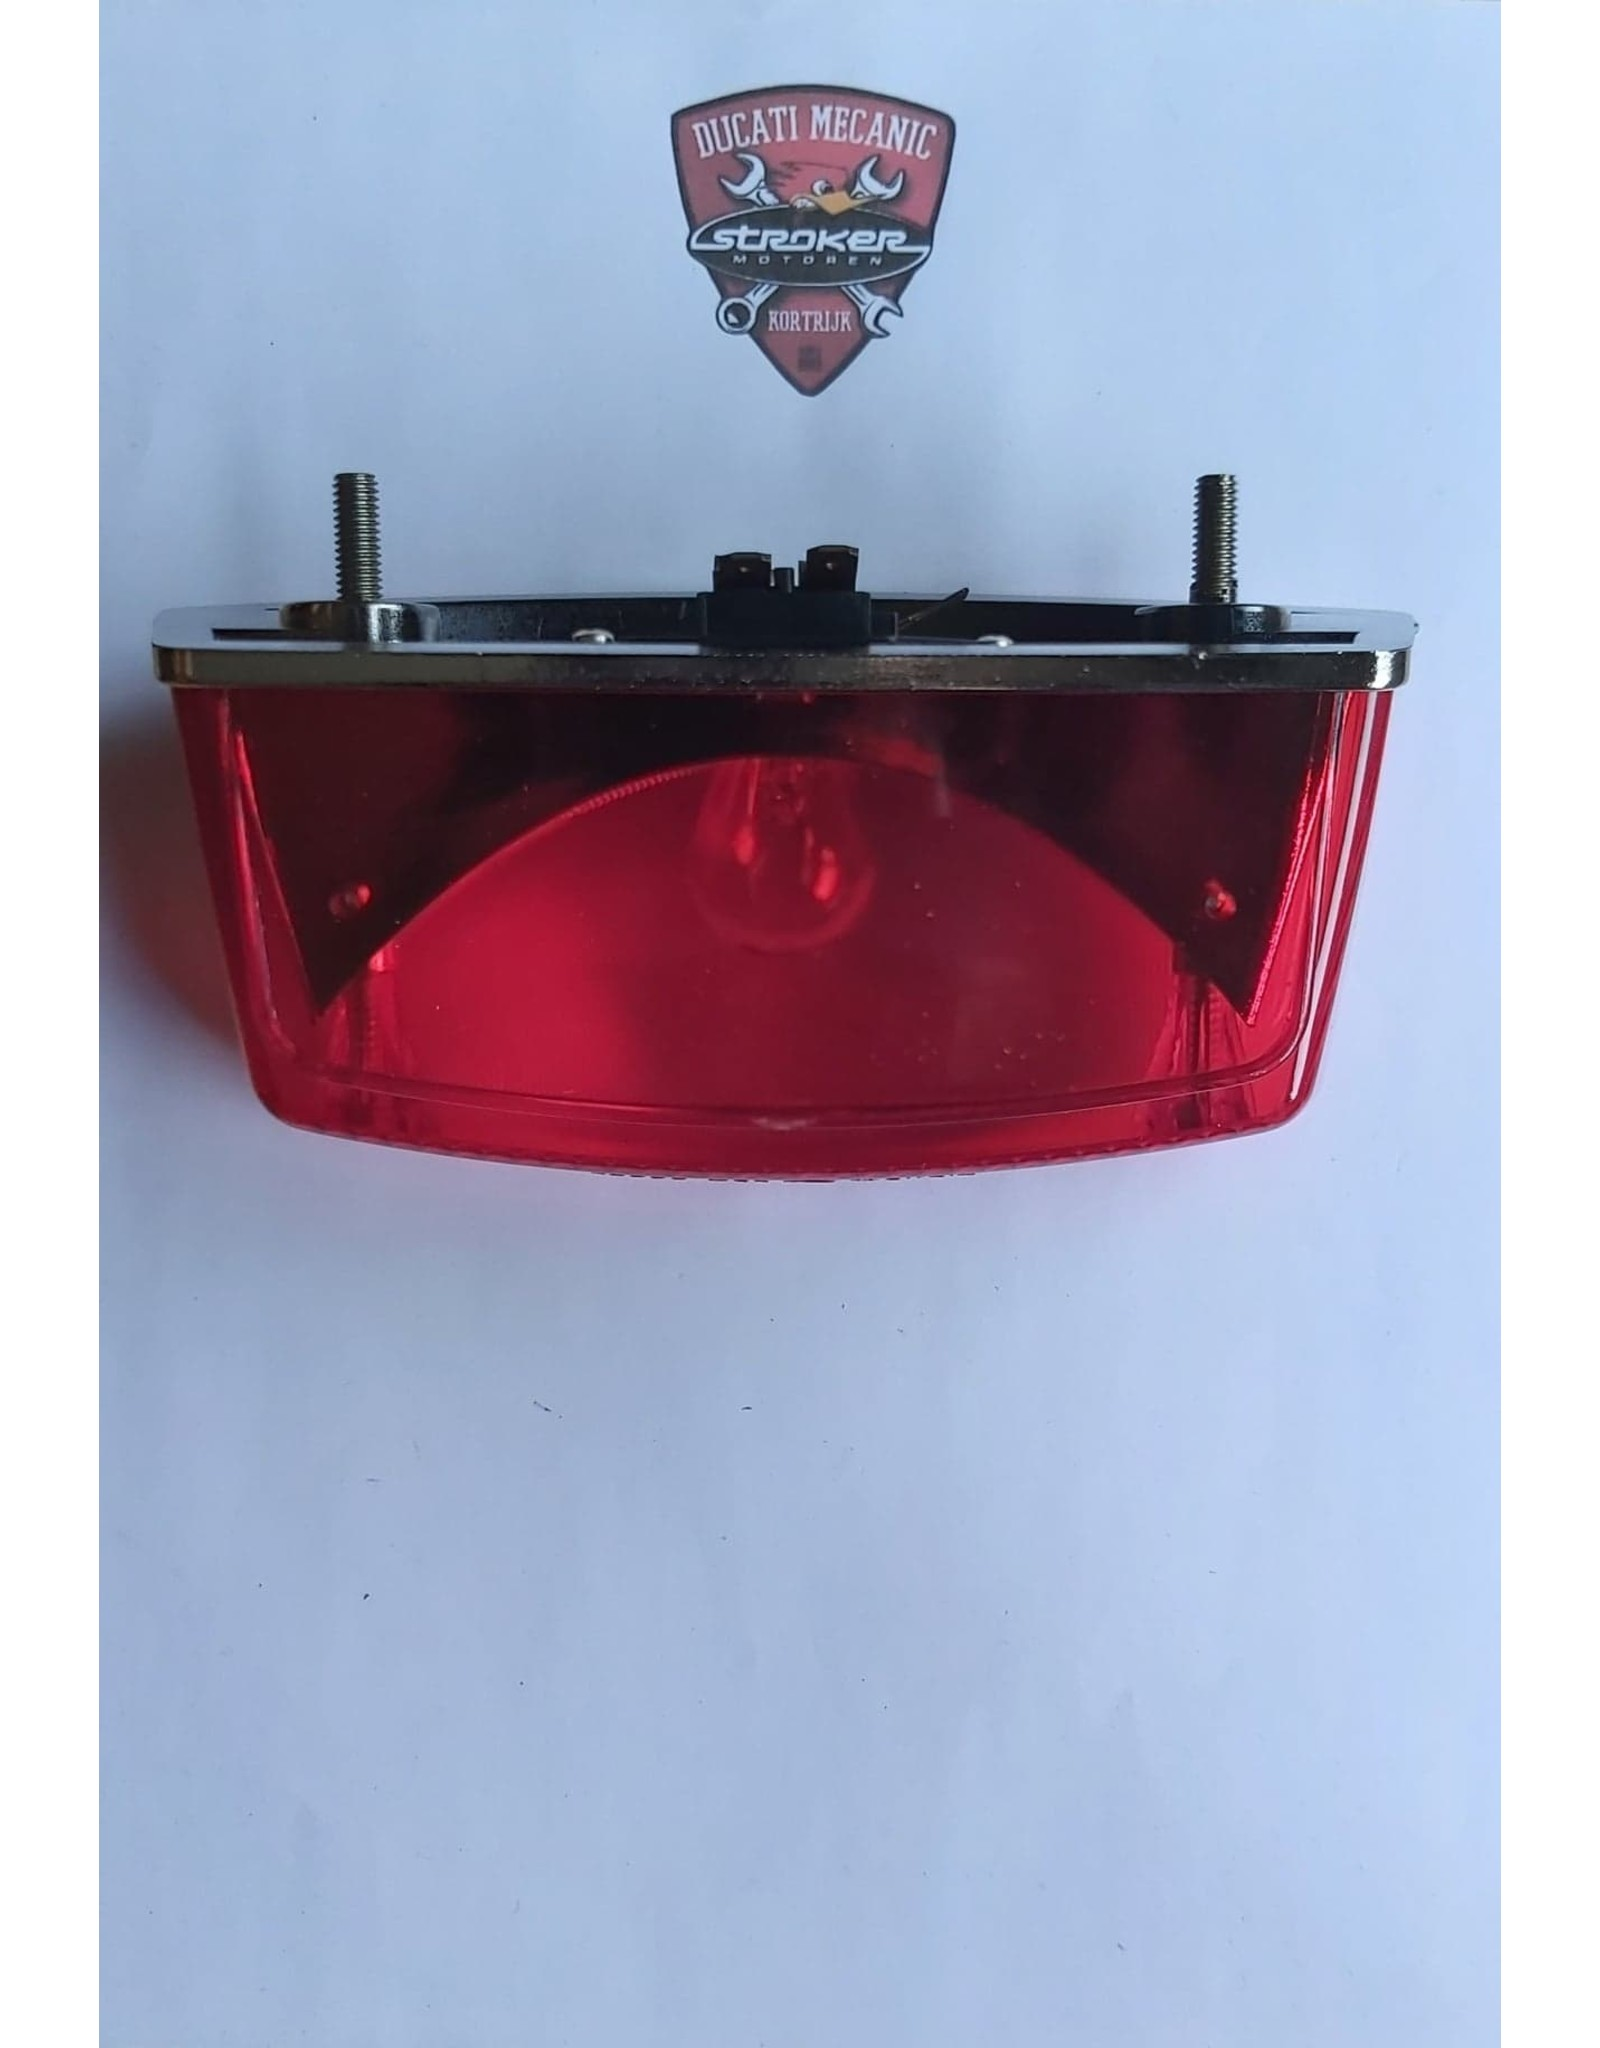 Ducati Ducati Monster 750 900 taillight 52540072a